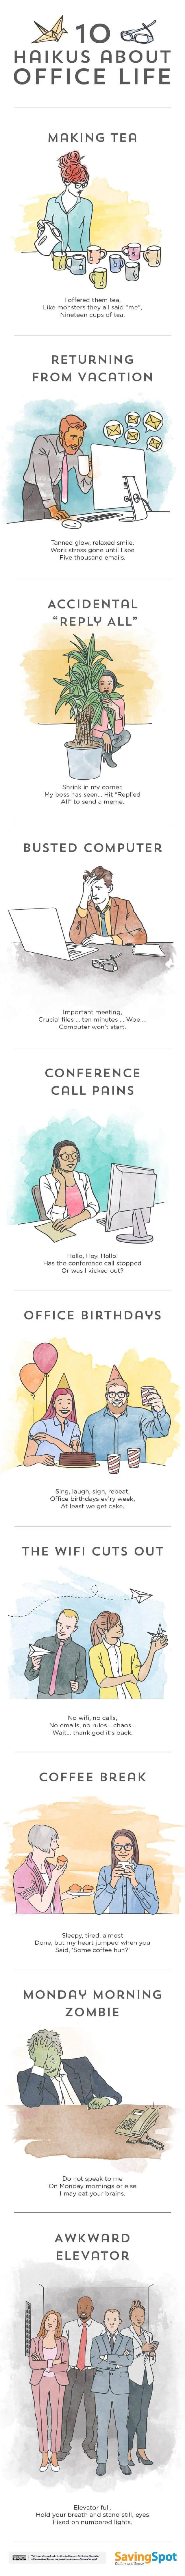 Image titled 10 haikus about office life